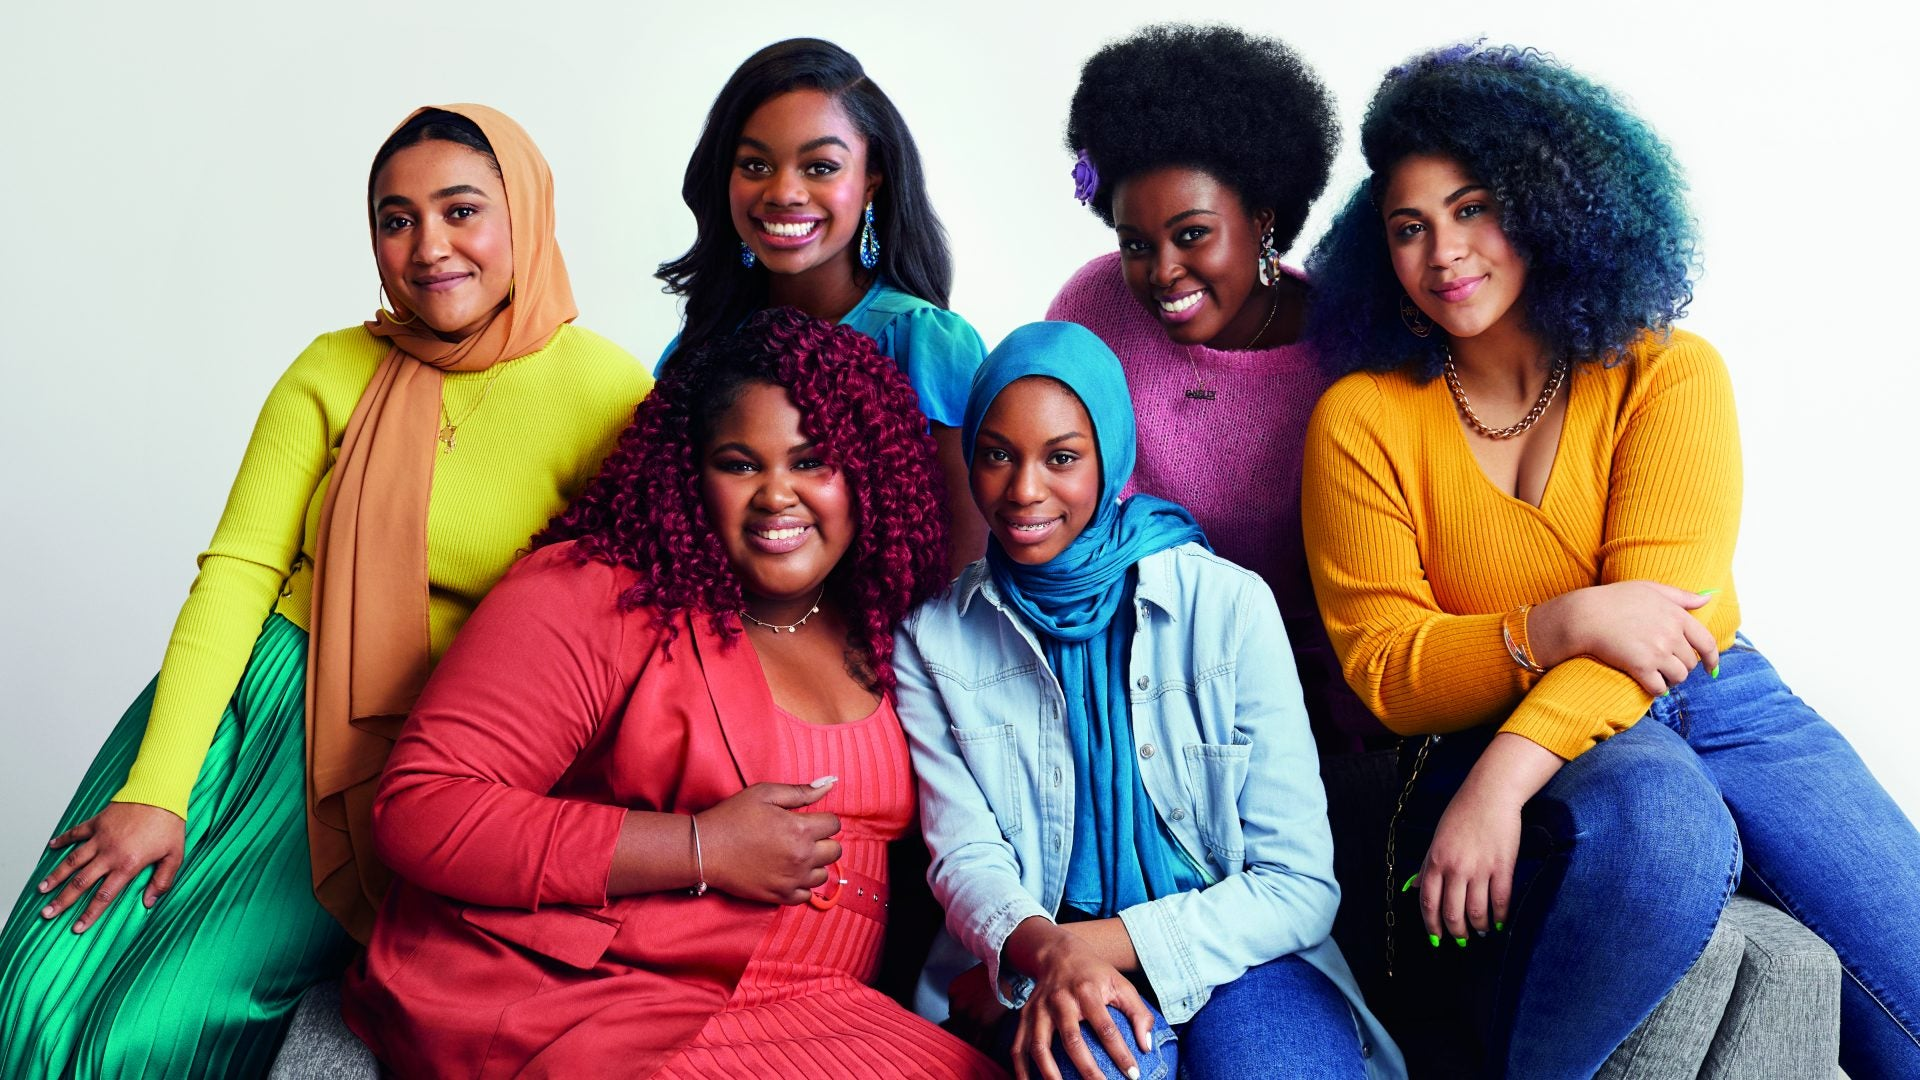 Get to Know the Faces of Girls United: Beautiful Possibilities